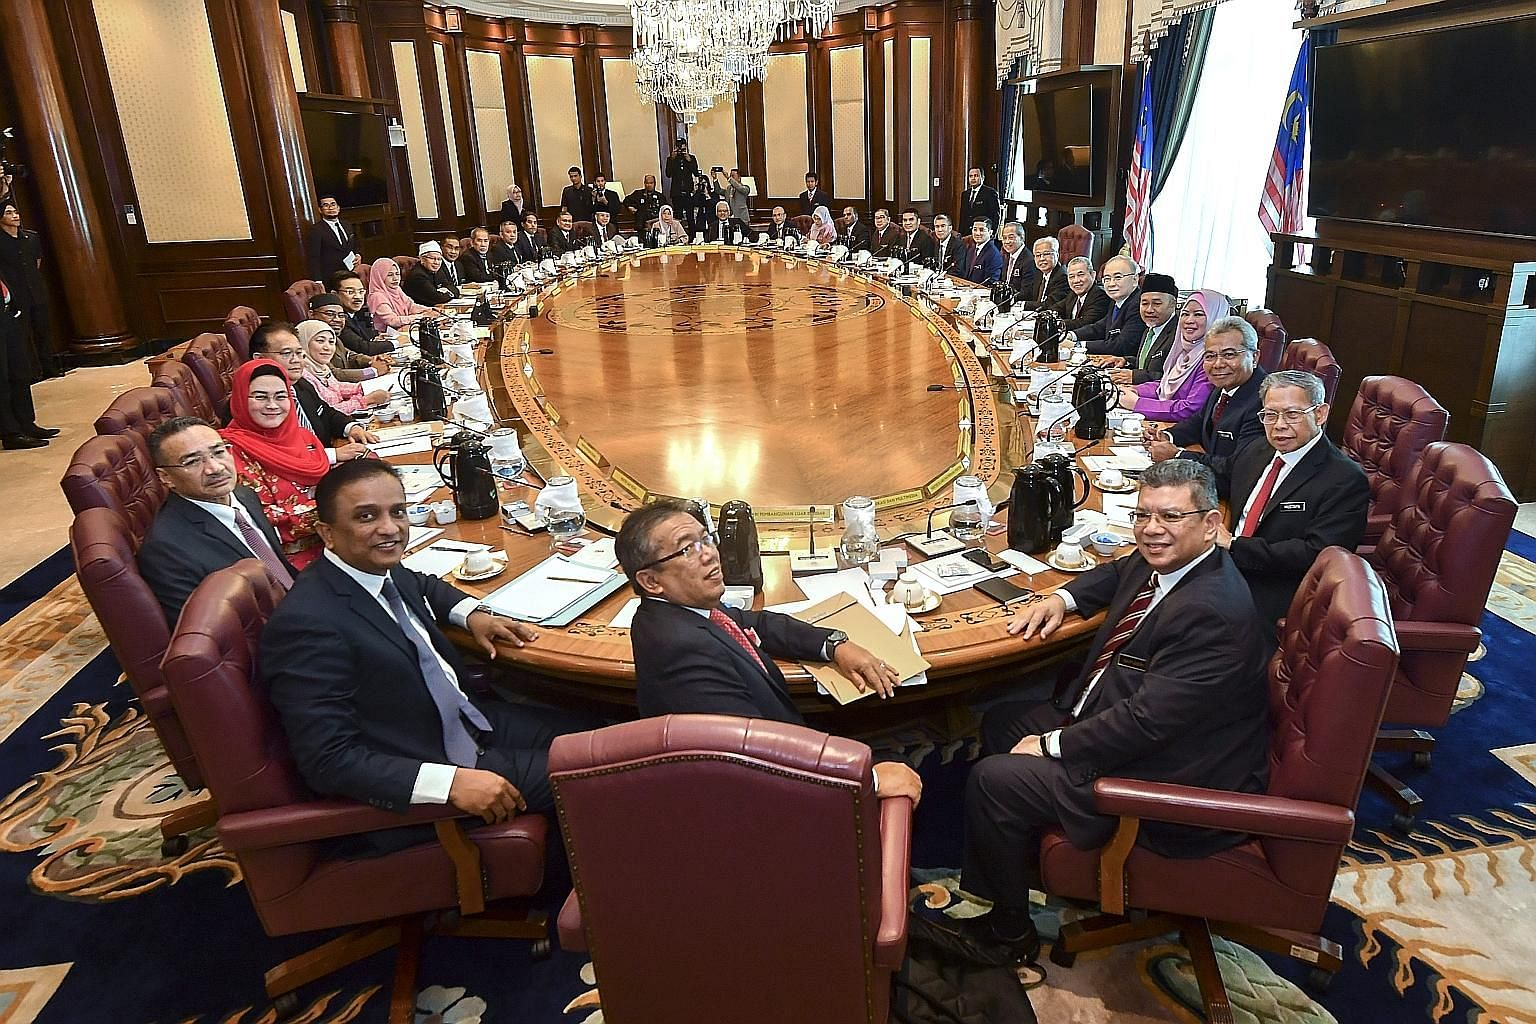 Malaysian Prime Minister Muhyiddin Yassin and his Cabinet ministers, who were sworn in on Tuesday, attending their first meeting yesterday. Mr Muhyiddin, who has appointed four senior ministers instead of a deputy premier, has pledged that his new Ca